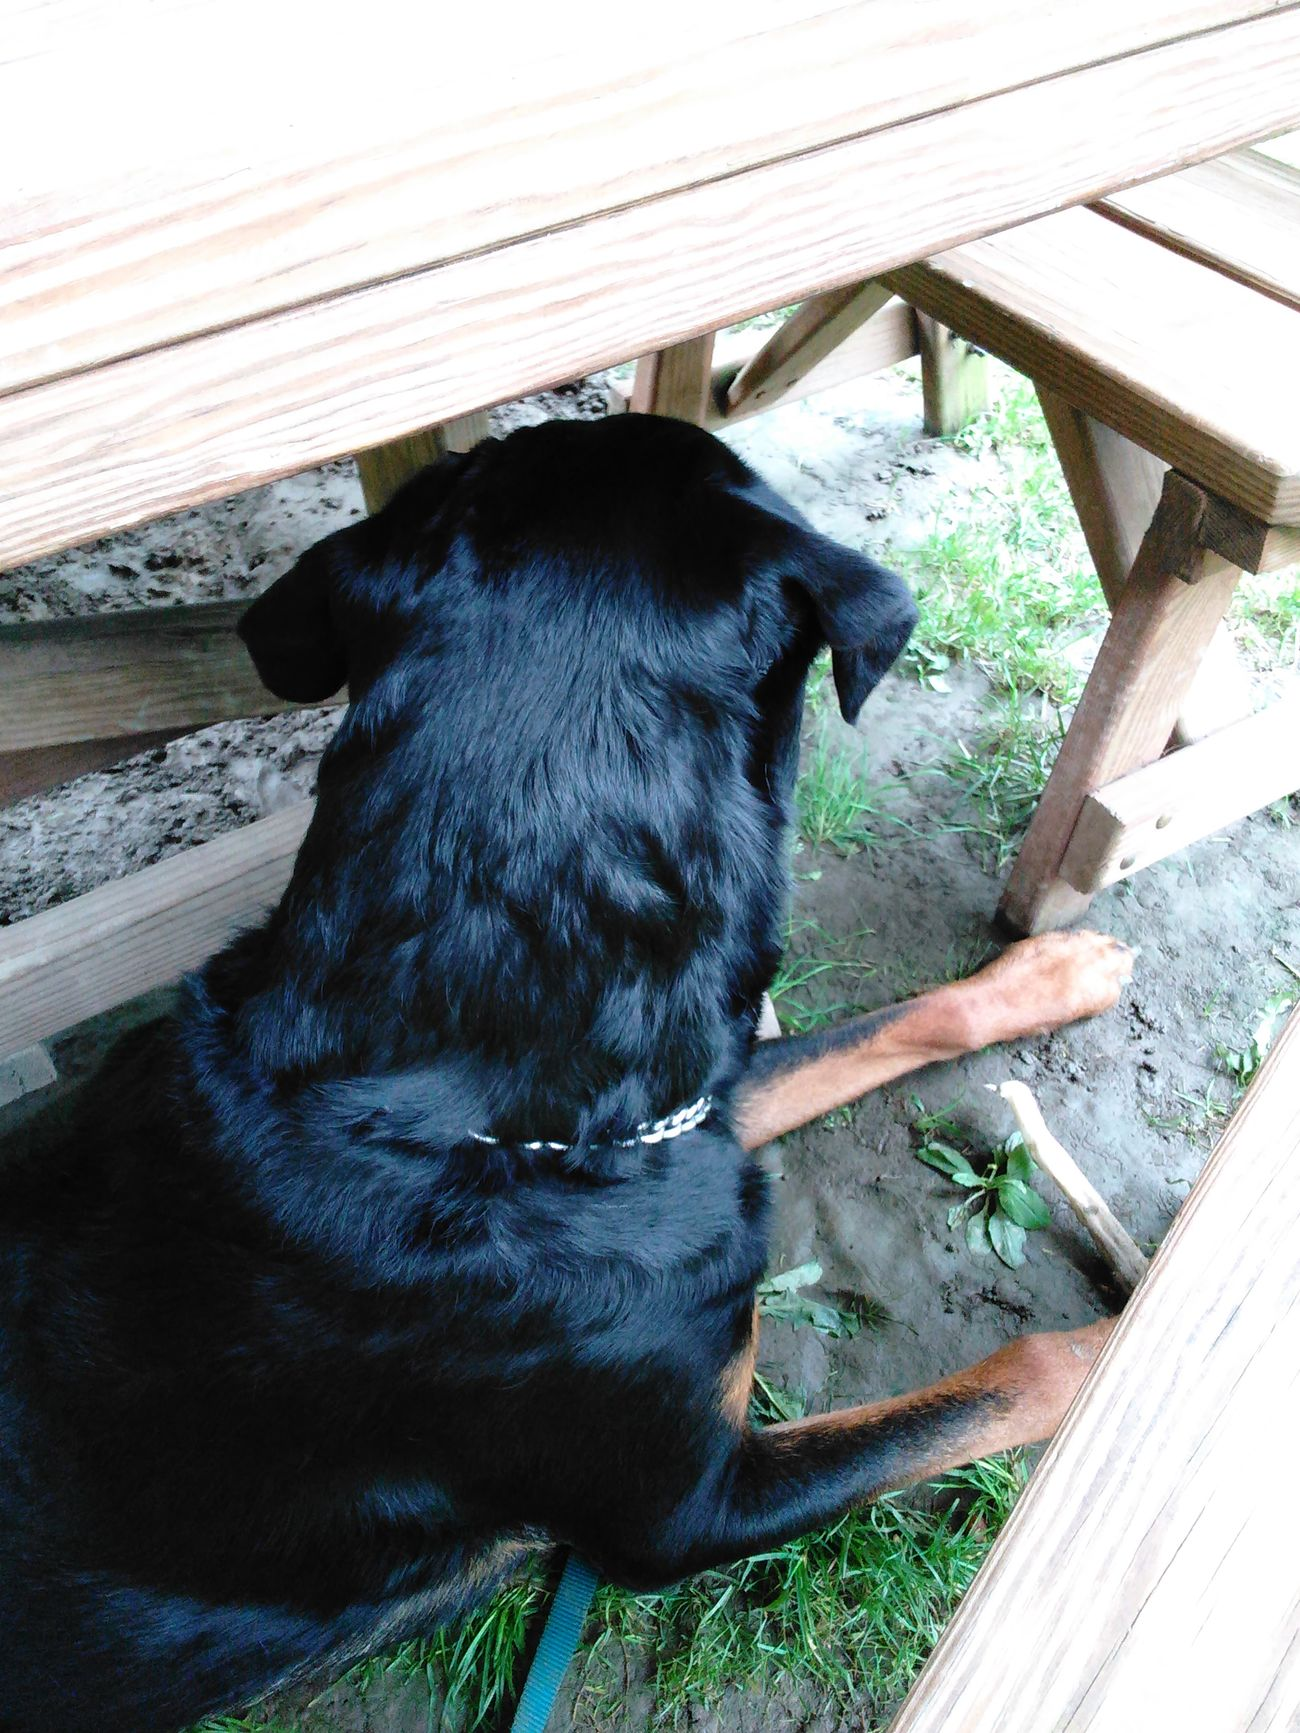 Favorite place under picnic table watching and listening for cars coming up road.. Check This Out My Favorite Photo My Buddy Caesar Canine Companion Dogs Of EyeEm Rottweilerlife Rottweilerlove Rottweiler Relaxing Was Sleeping Dog Love Dogoftheday